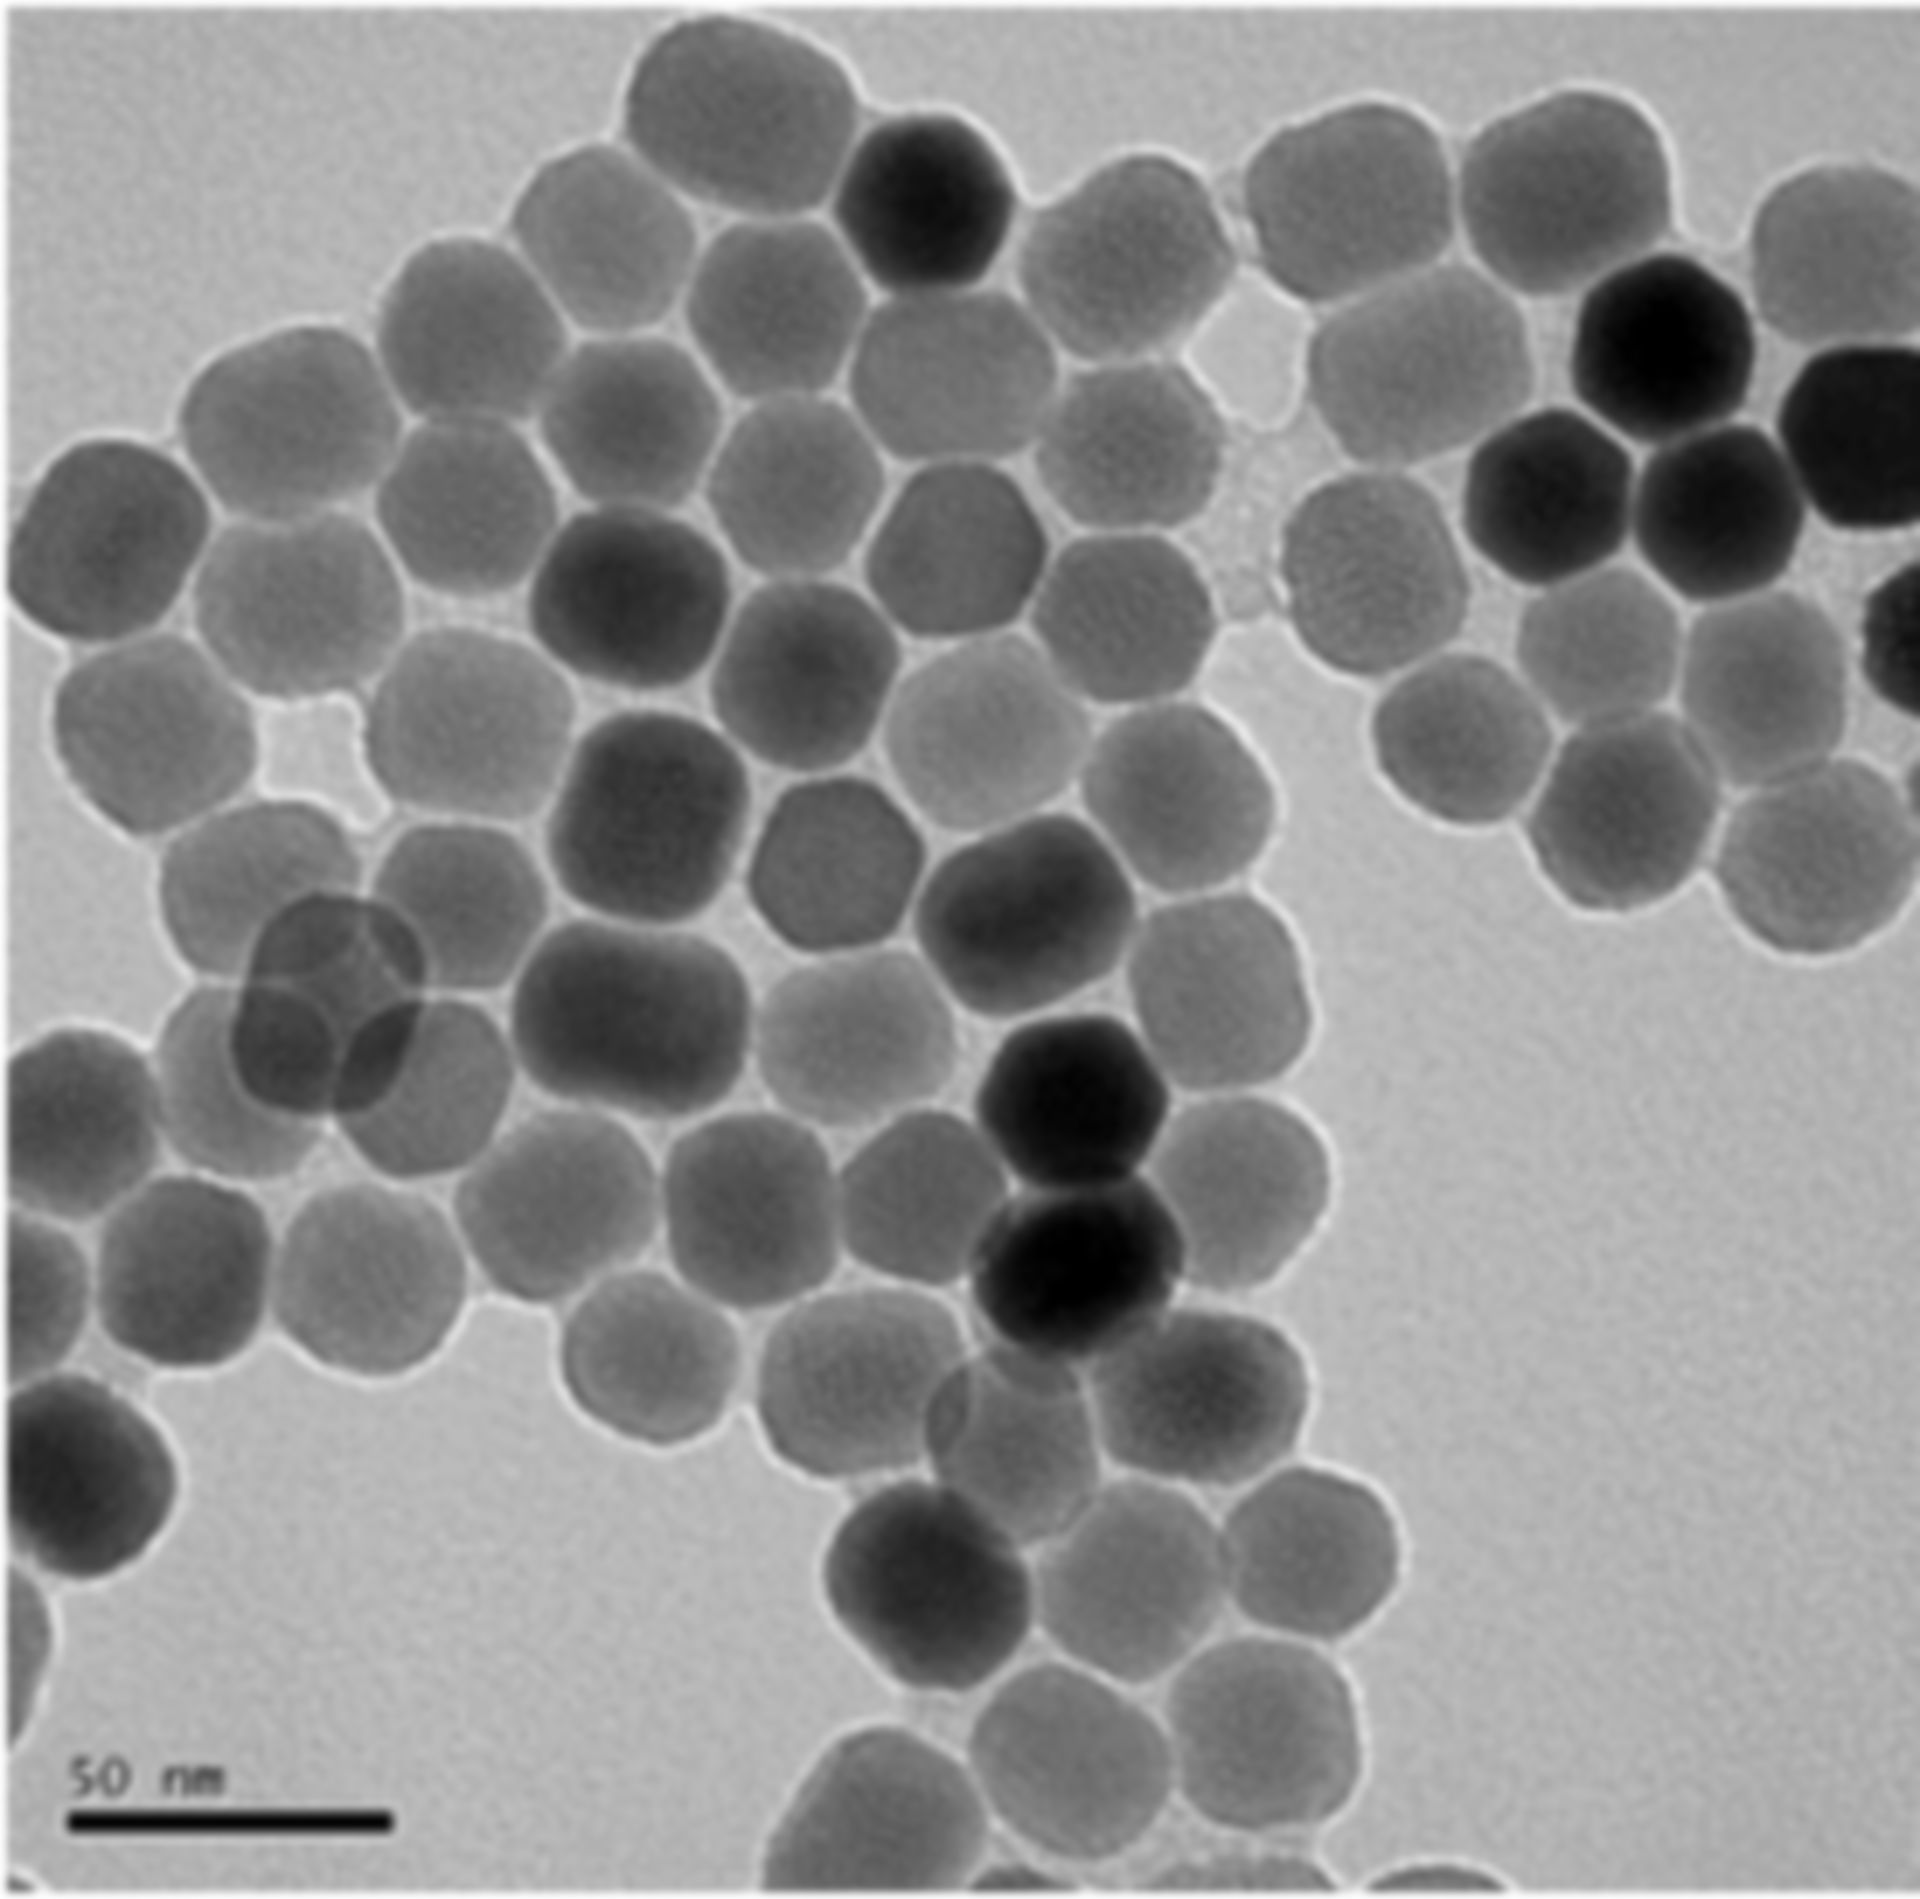 properties of gold nanoparticles